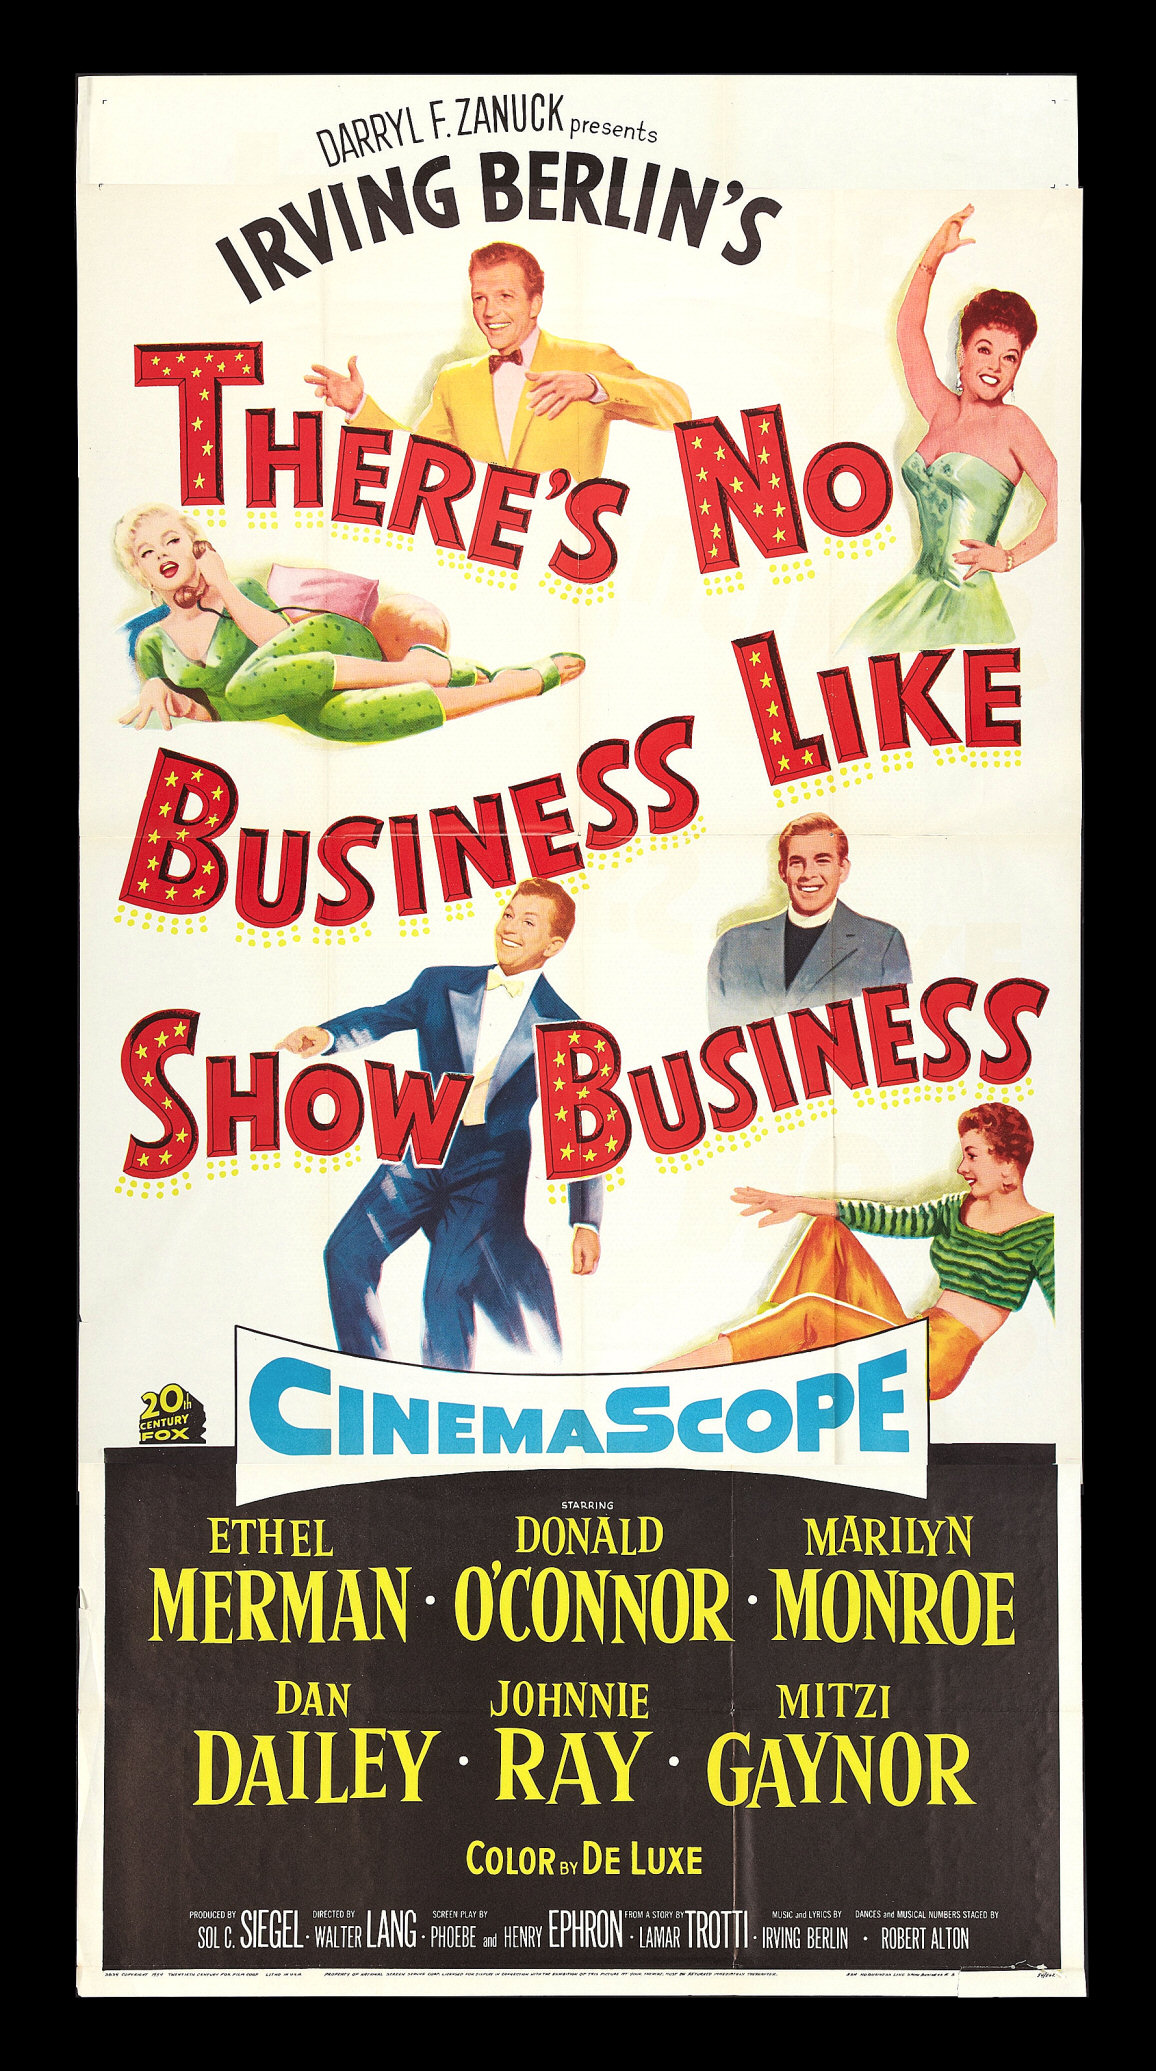 Show business: business or show